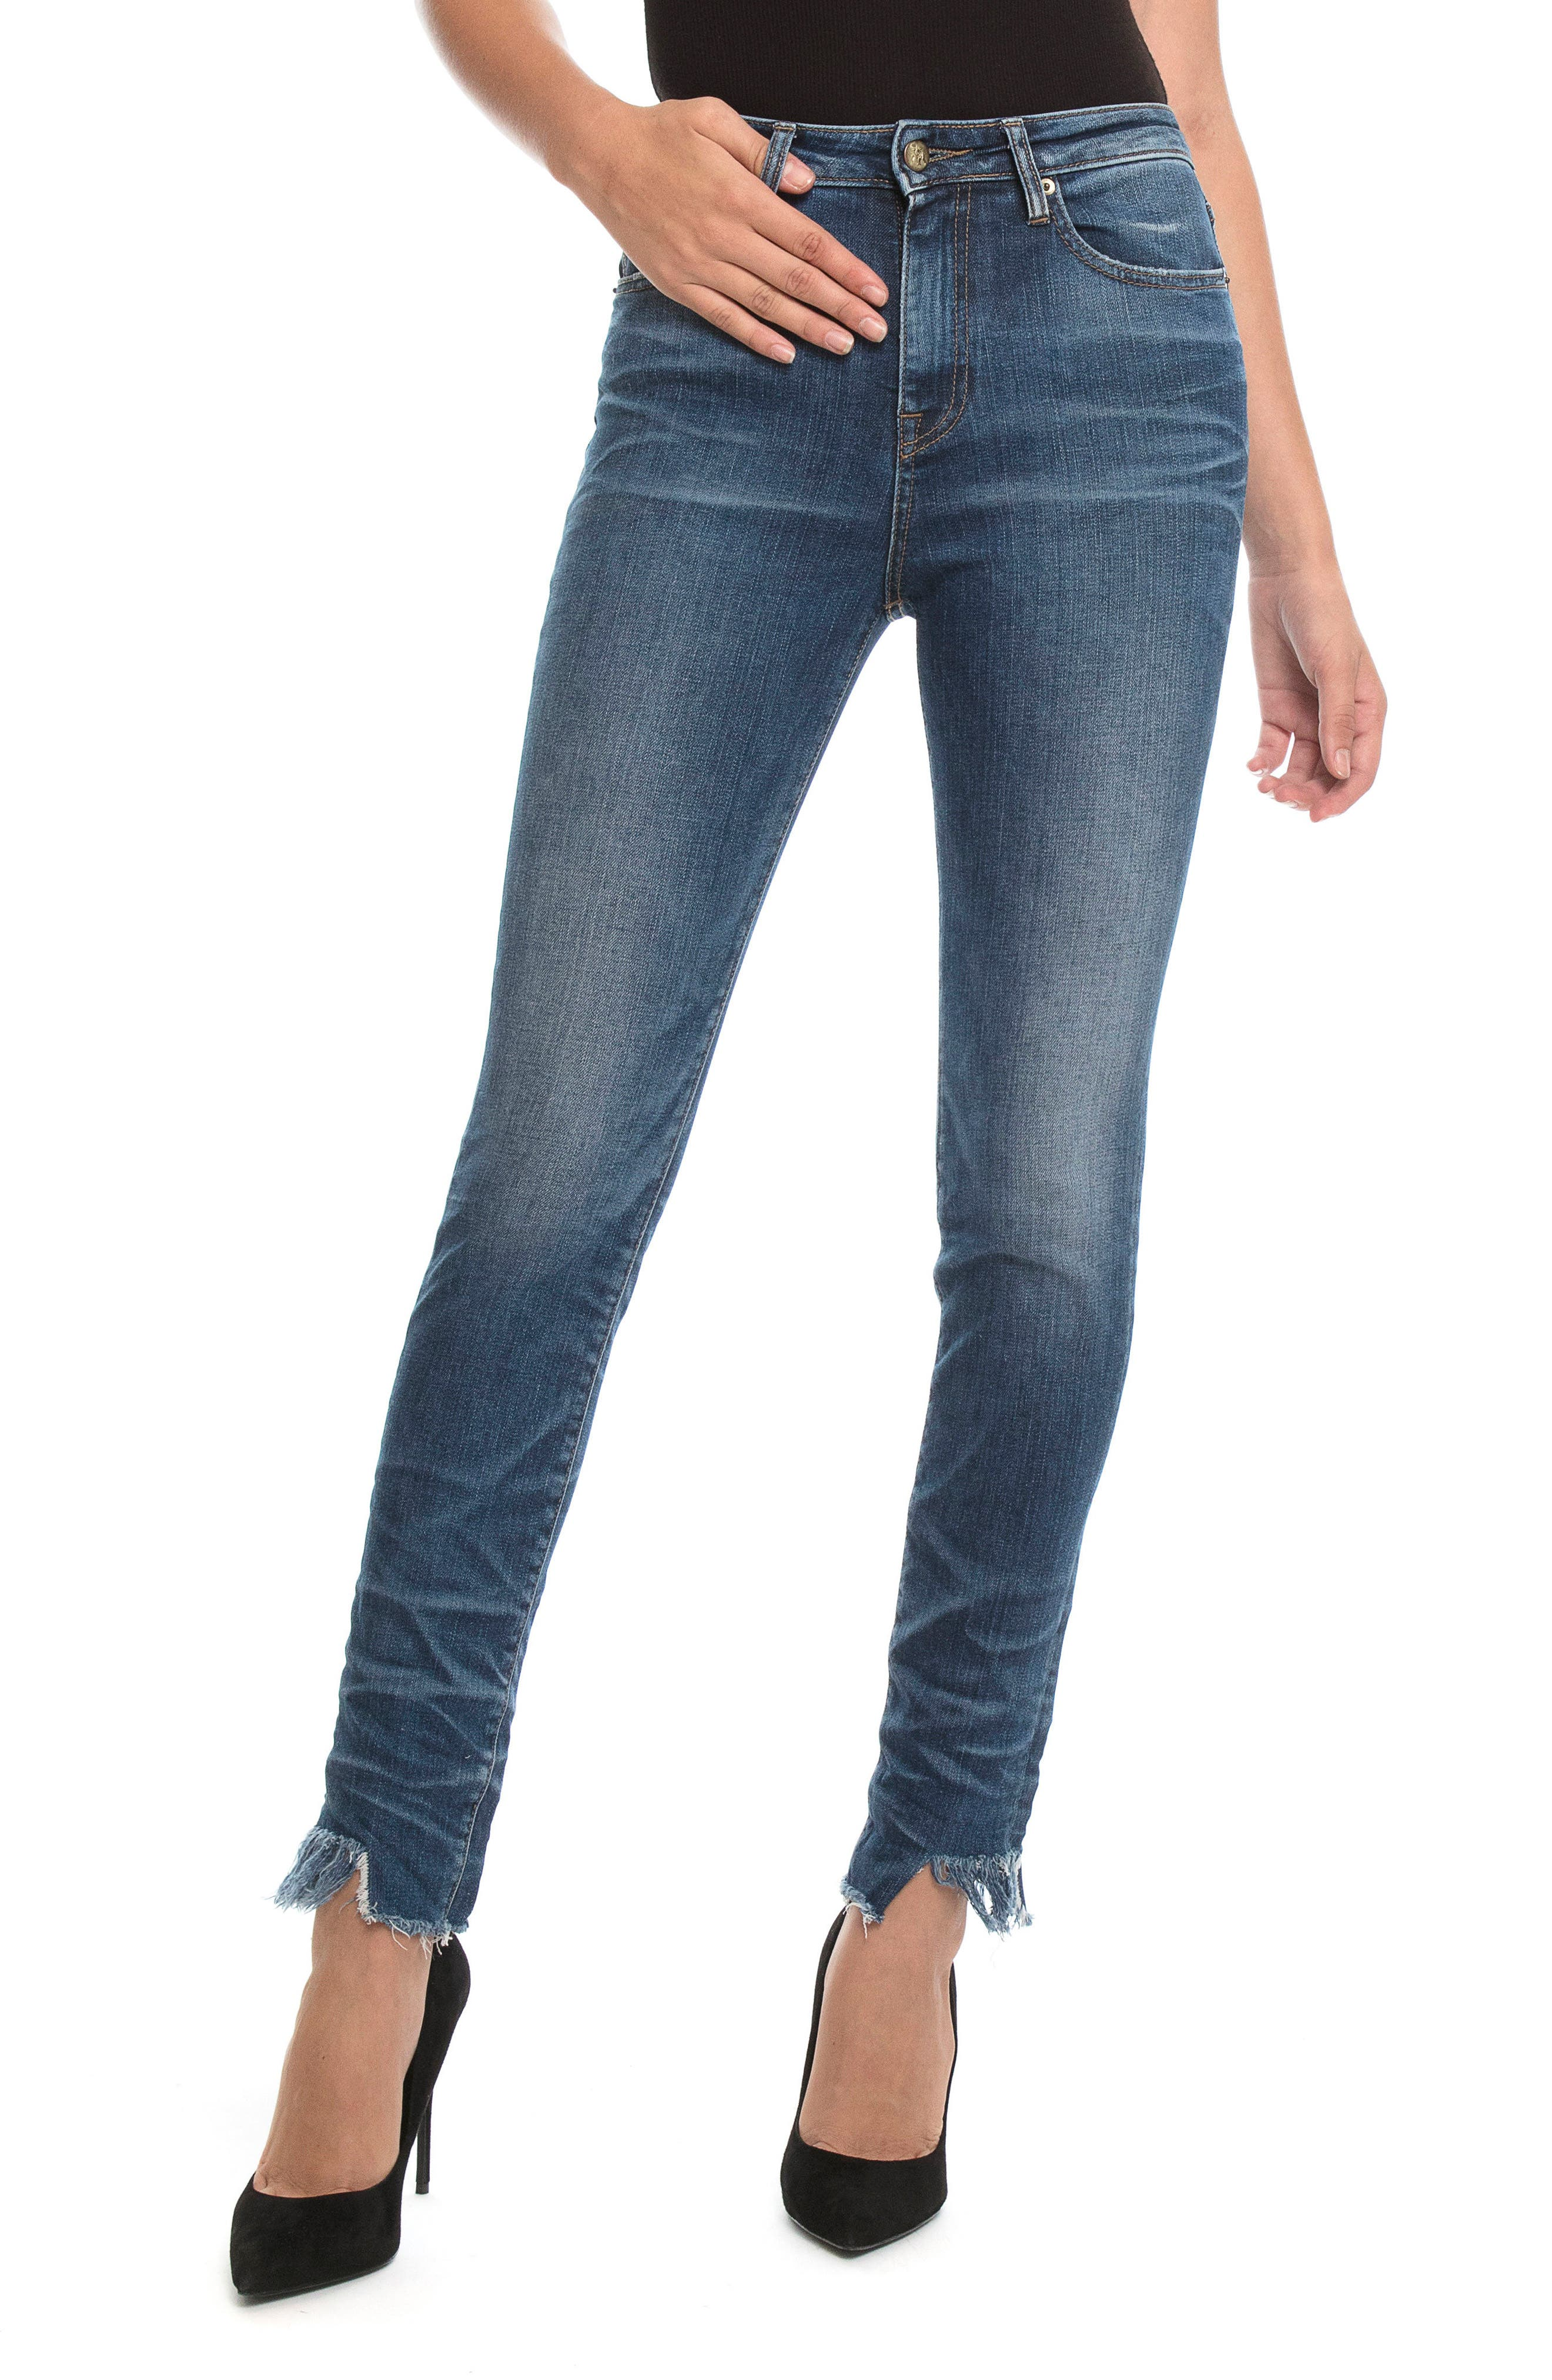 Camaro Ankle Skinny Jeans,                         Main,                         color, 484